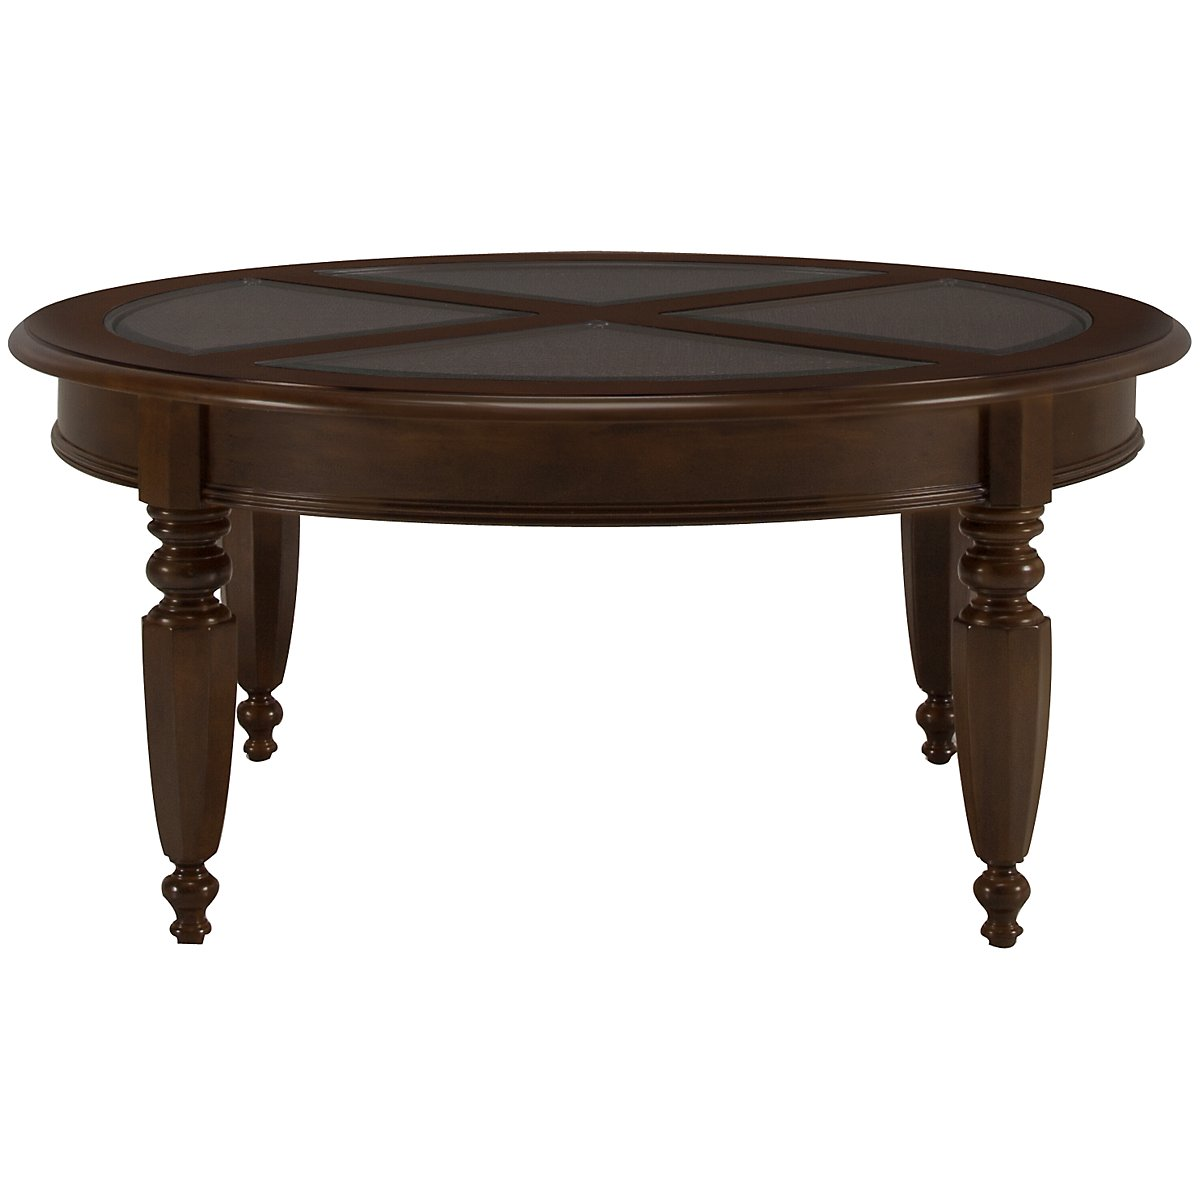 Claire Dark Tone Round Coffee Table